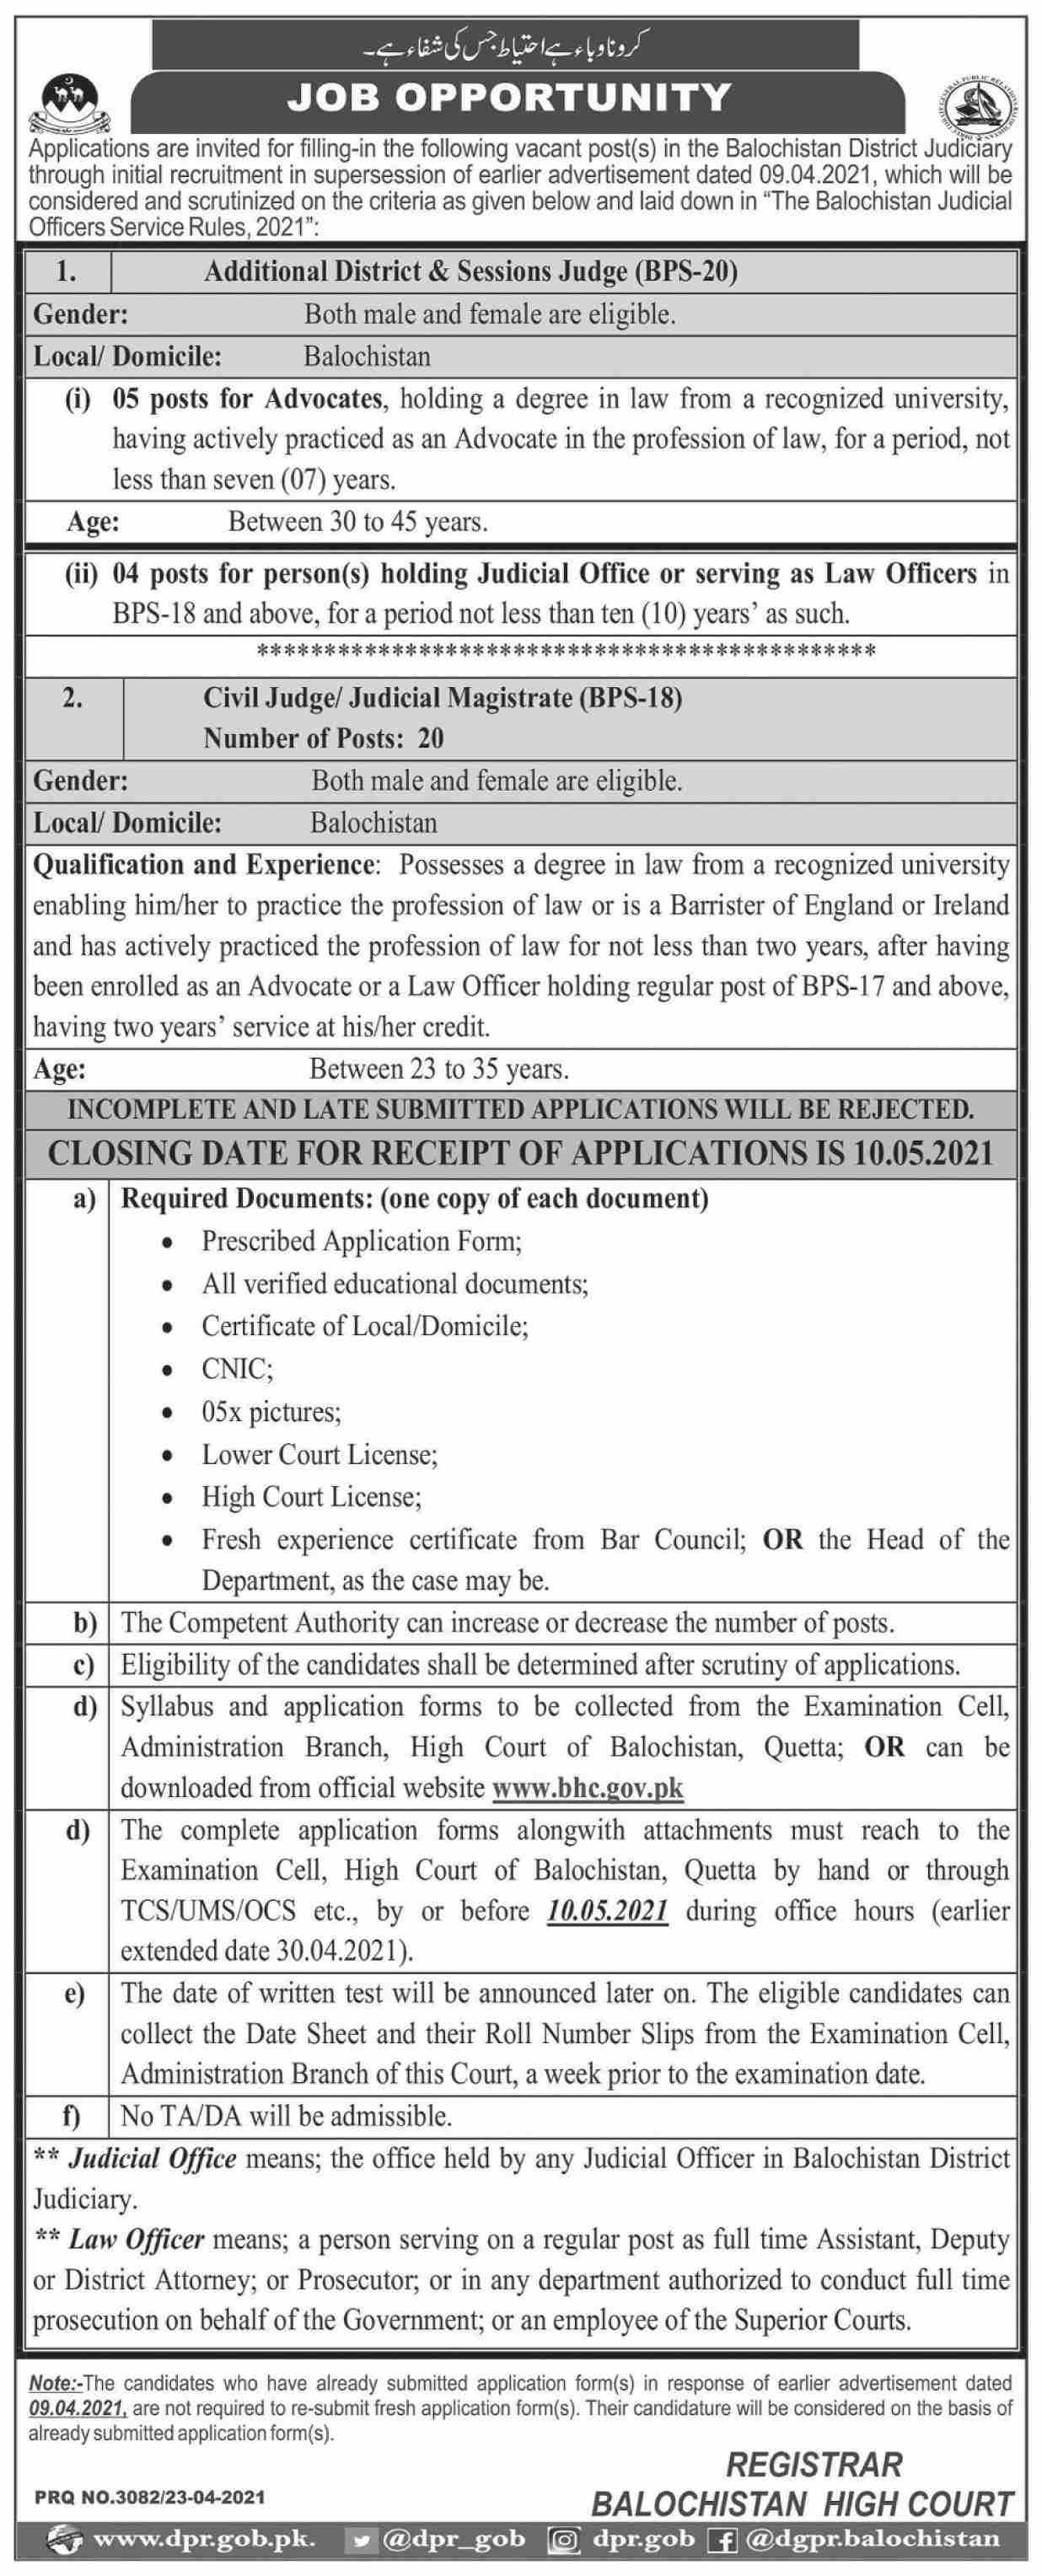 High Court Of Balochistan jobs newspaper ad for Additional District & Session Judge in Quetta on 2021-04-24